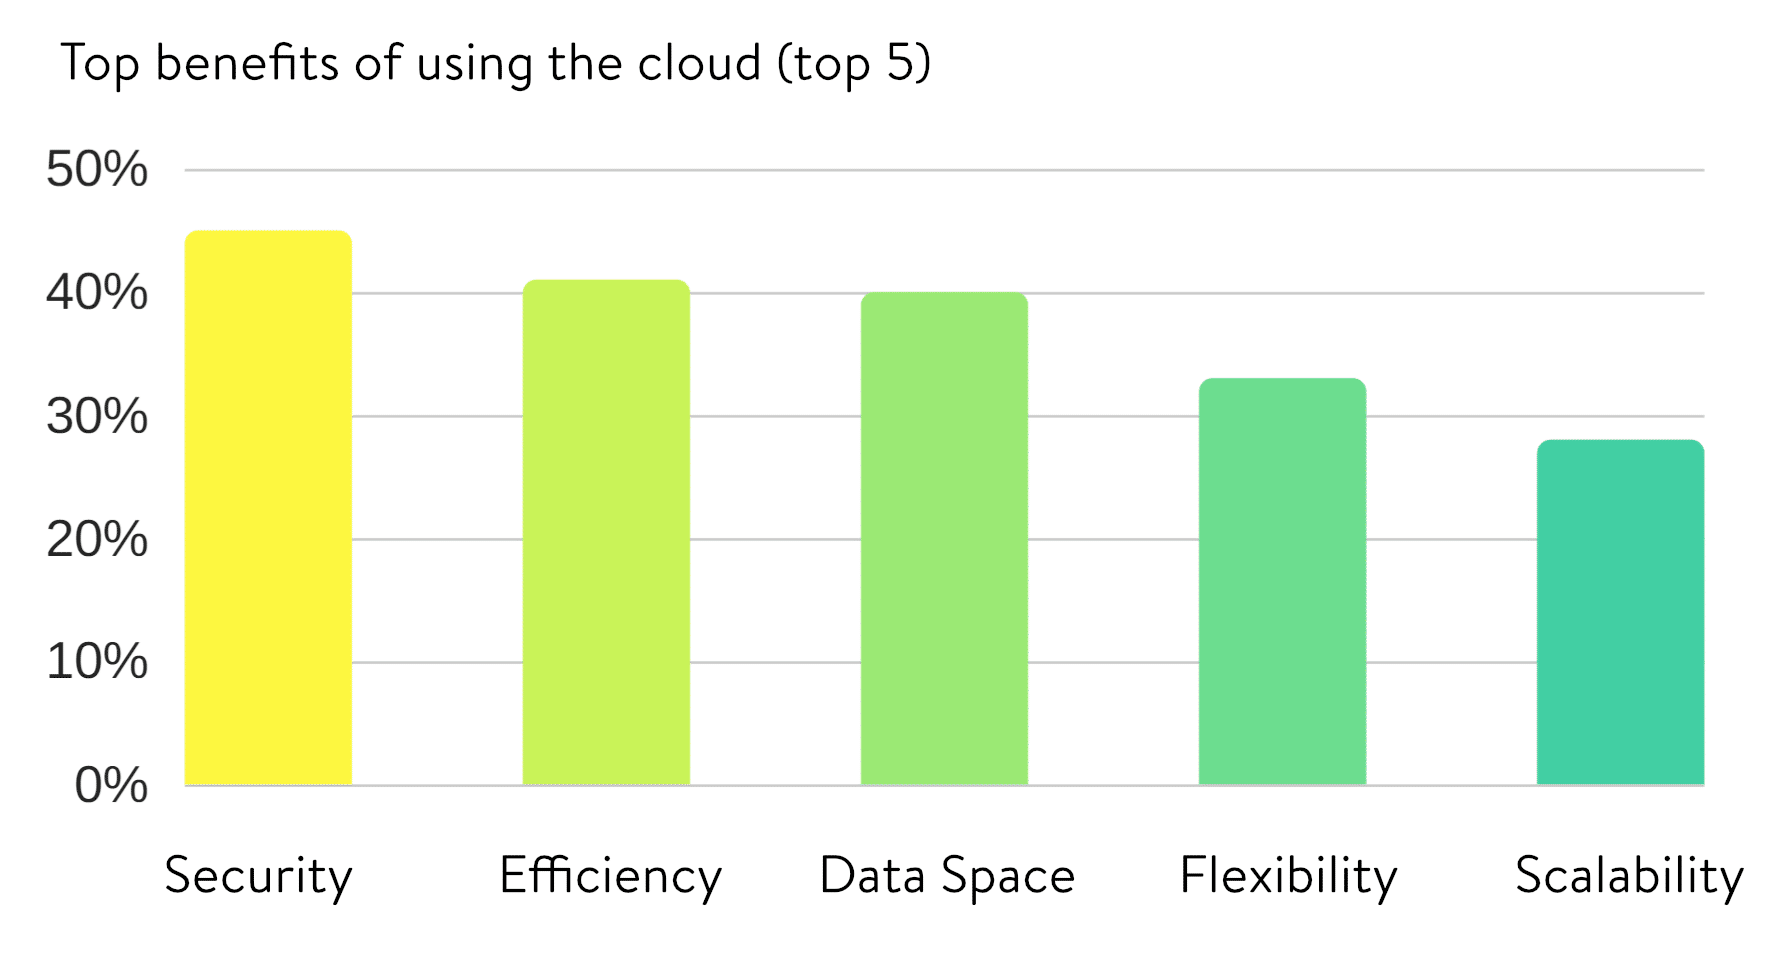 Top 5 benefits of using the cloud